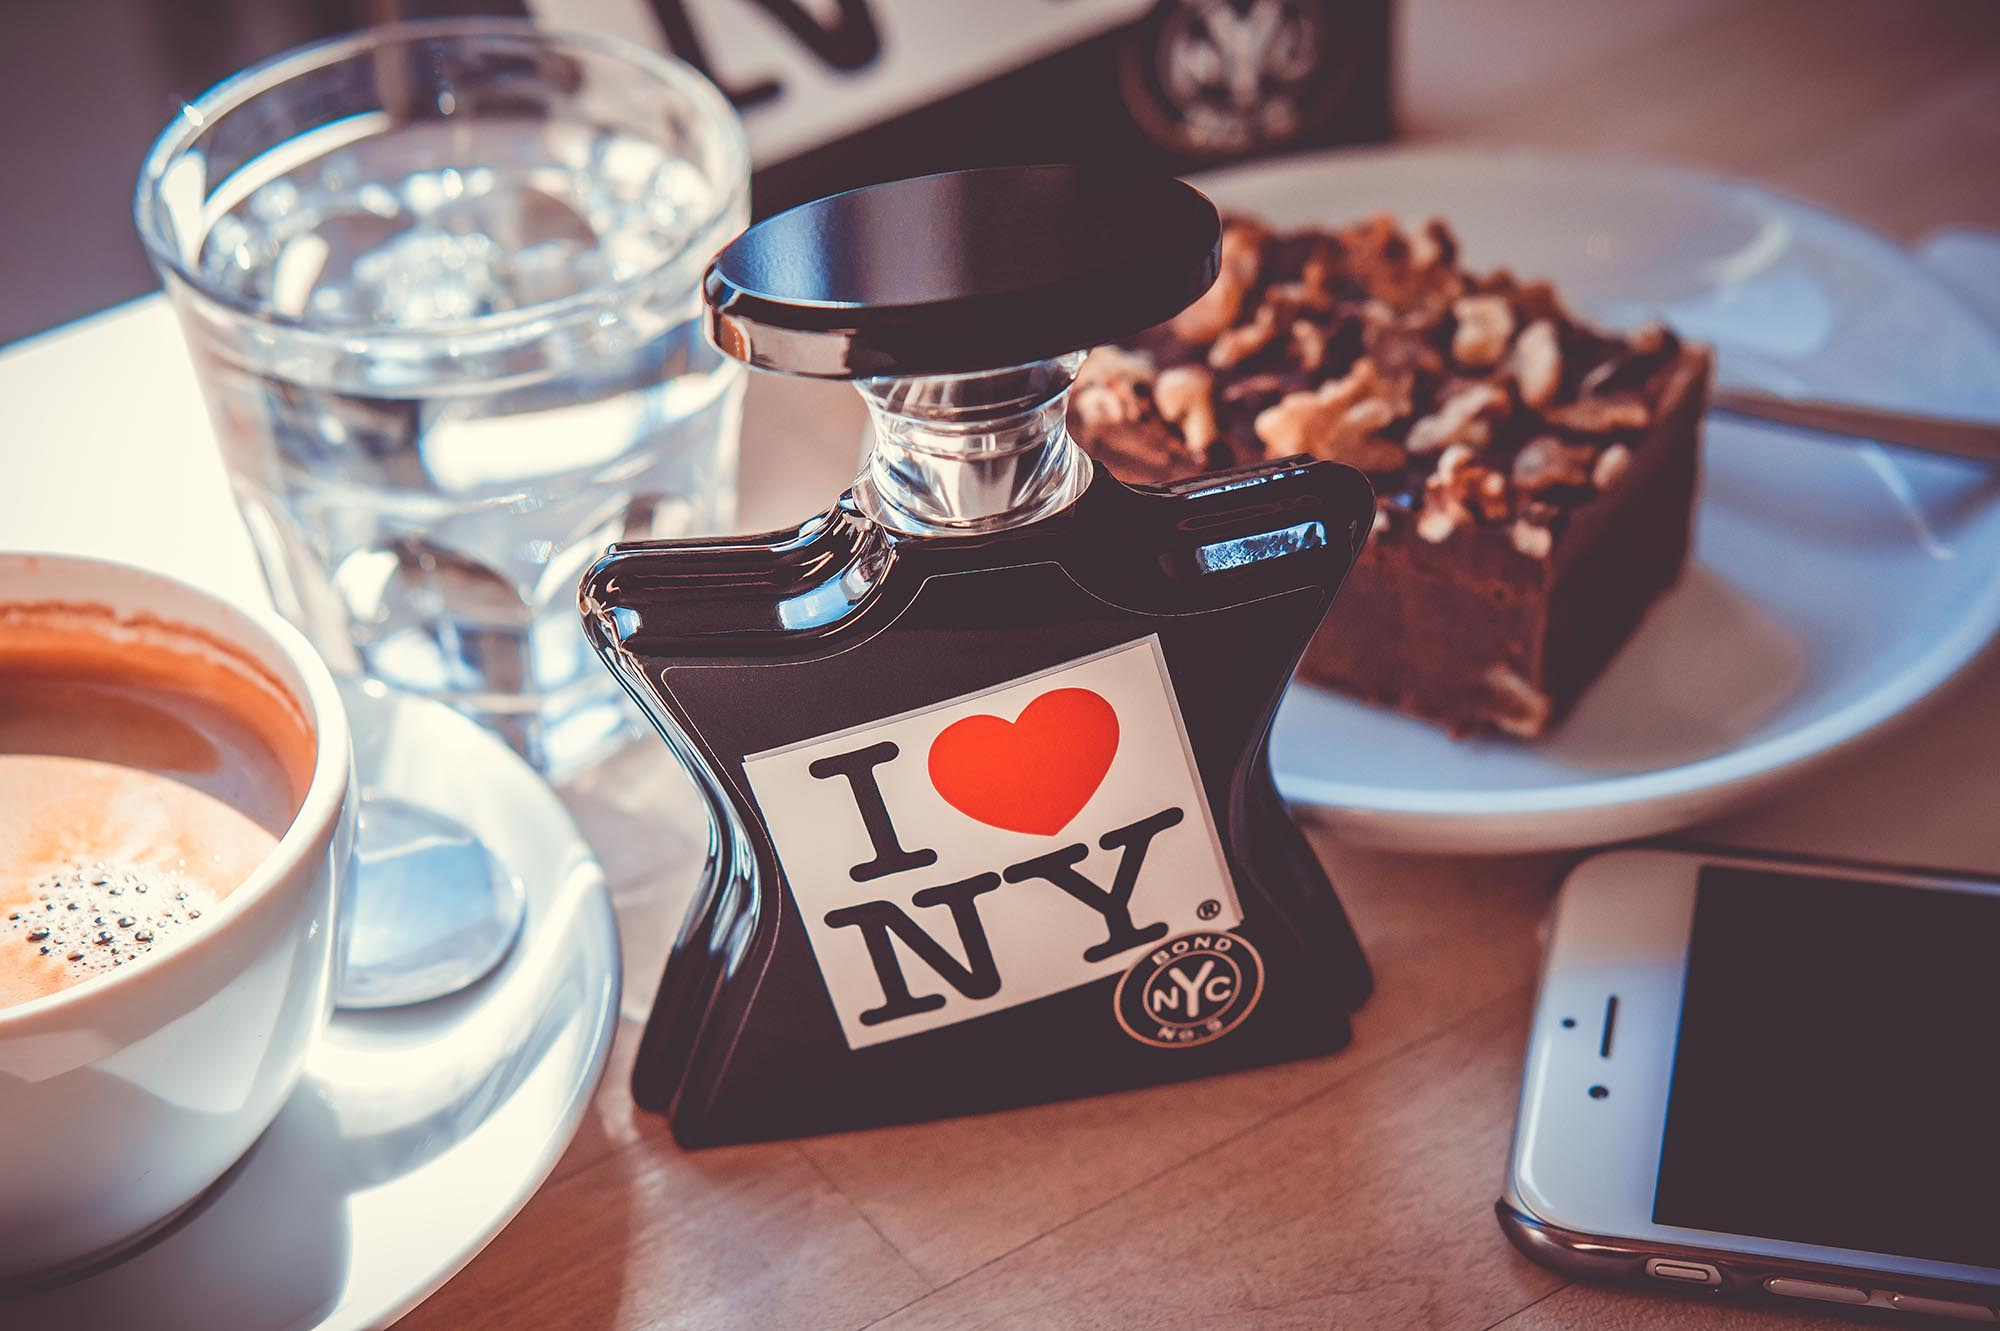 Bond No. 9 I Love NY for all perfume niche fragrance coffee scent cafe gourmand Parfüm Duft Nischenparfüm нишевый парфюм аромат парфюмерия кофе Kaffee Cafe